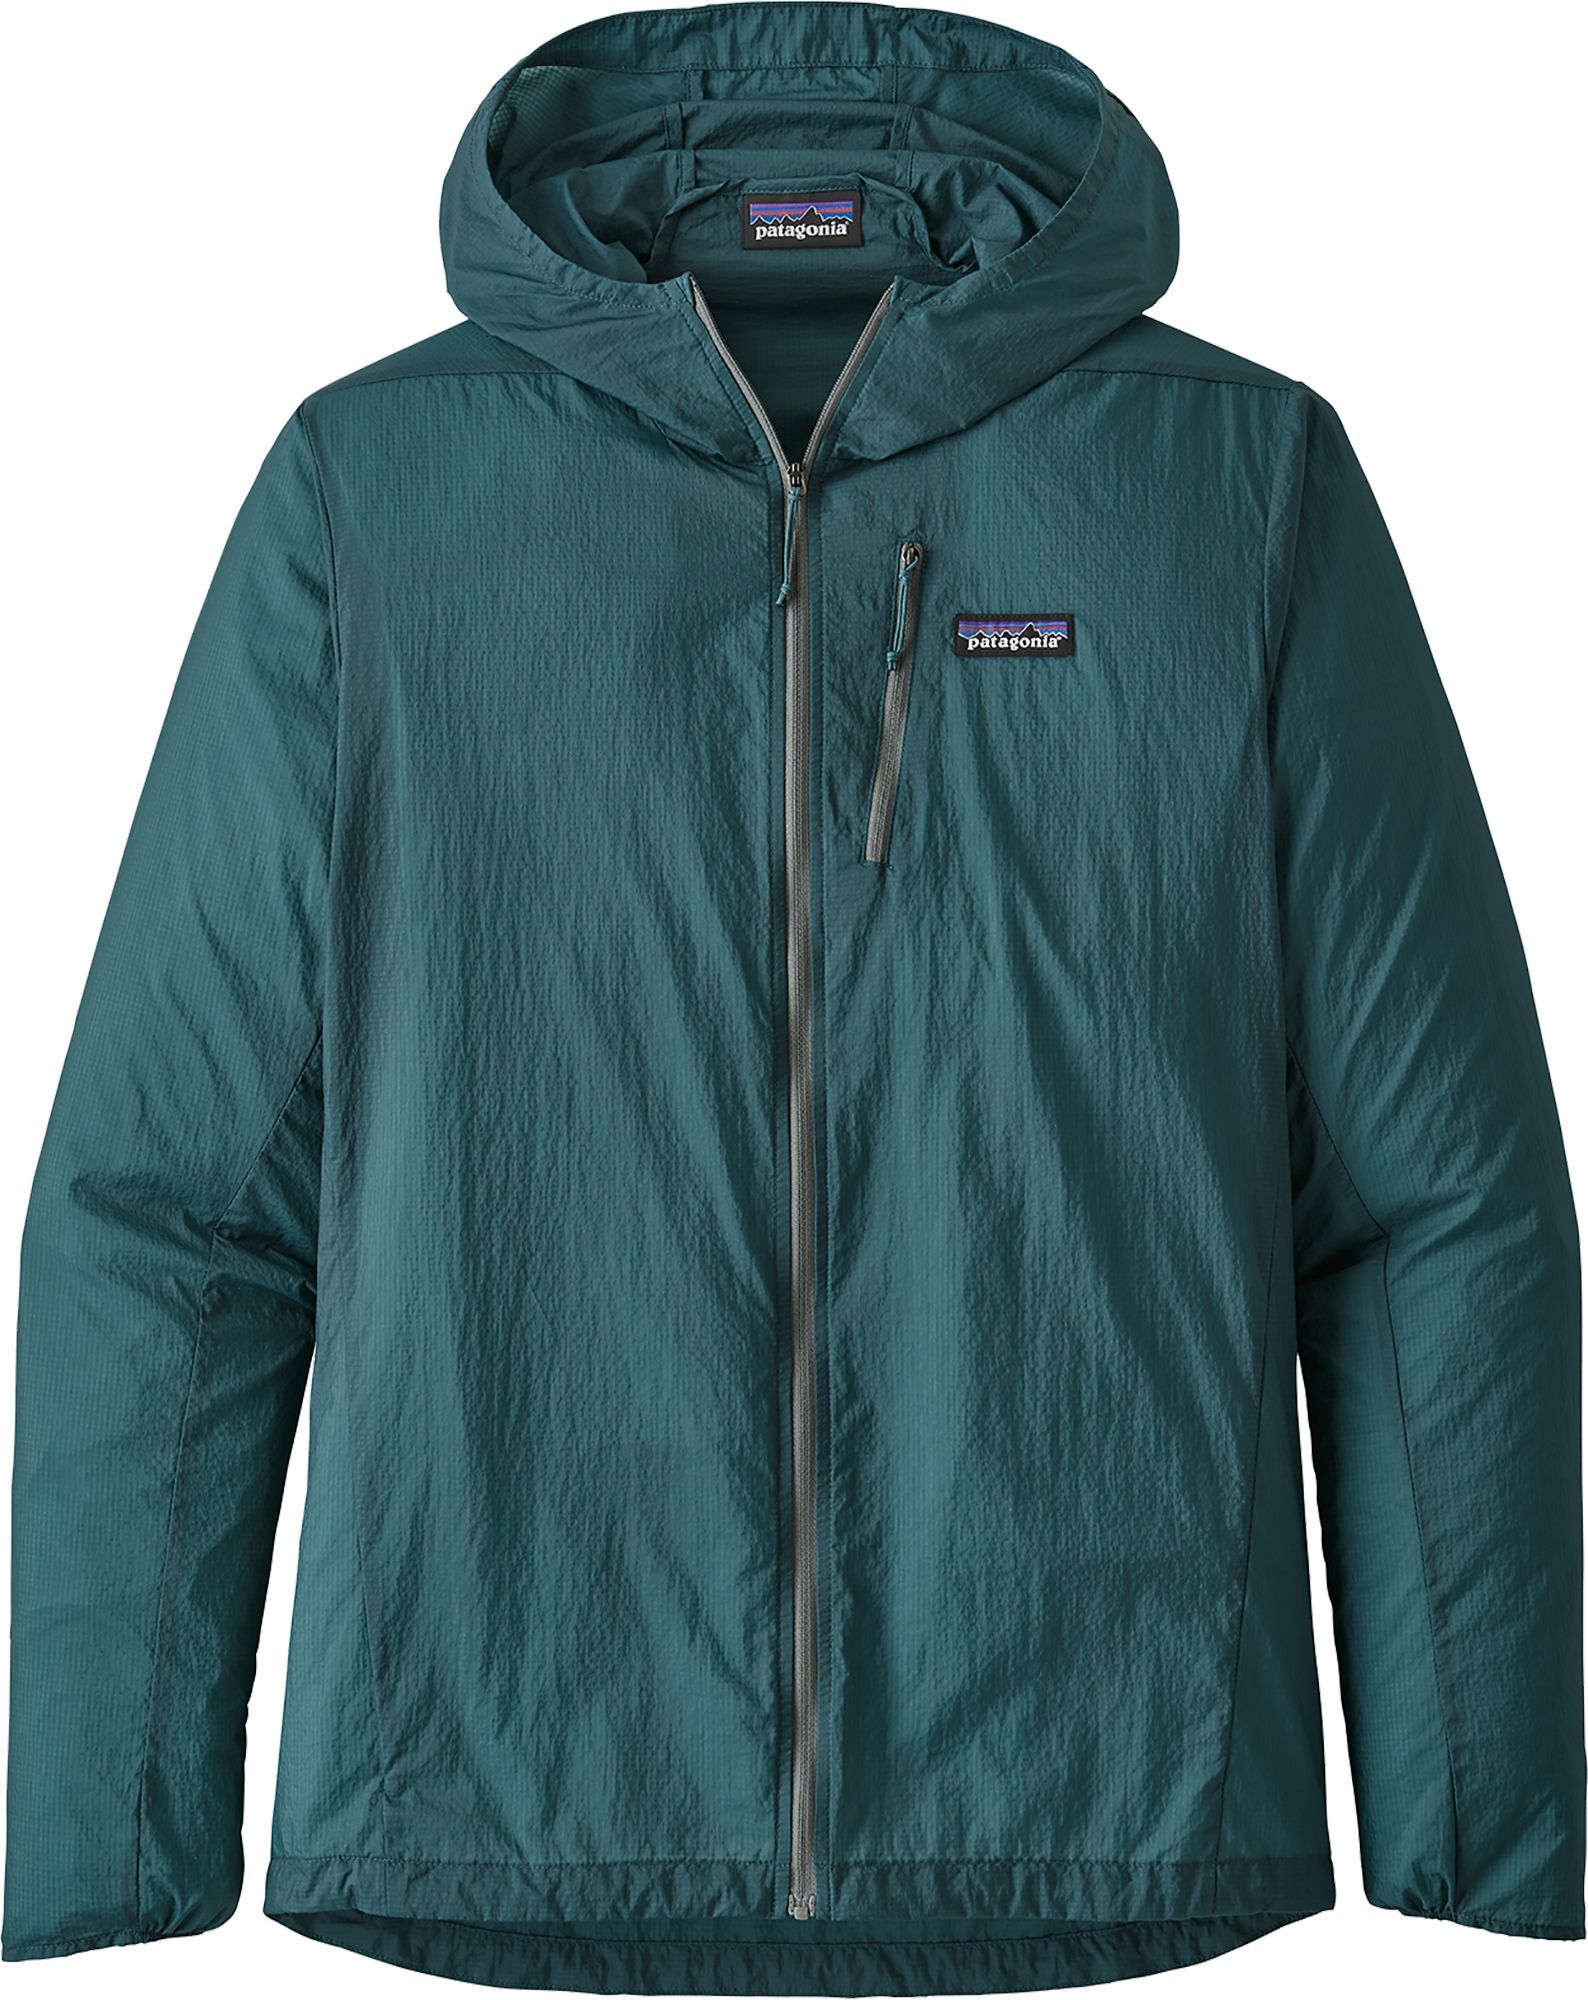 Patagonia Men's Houdini Jacket, Size Small, Red in 2019